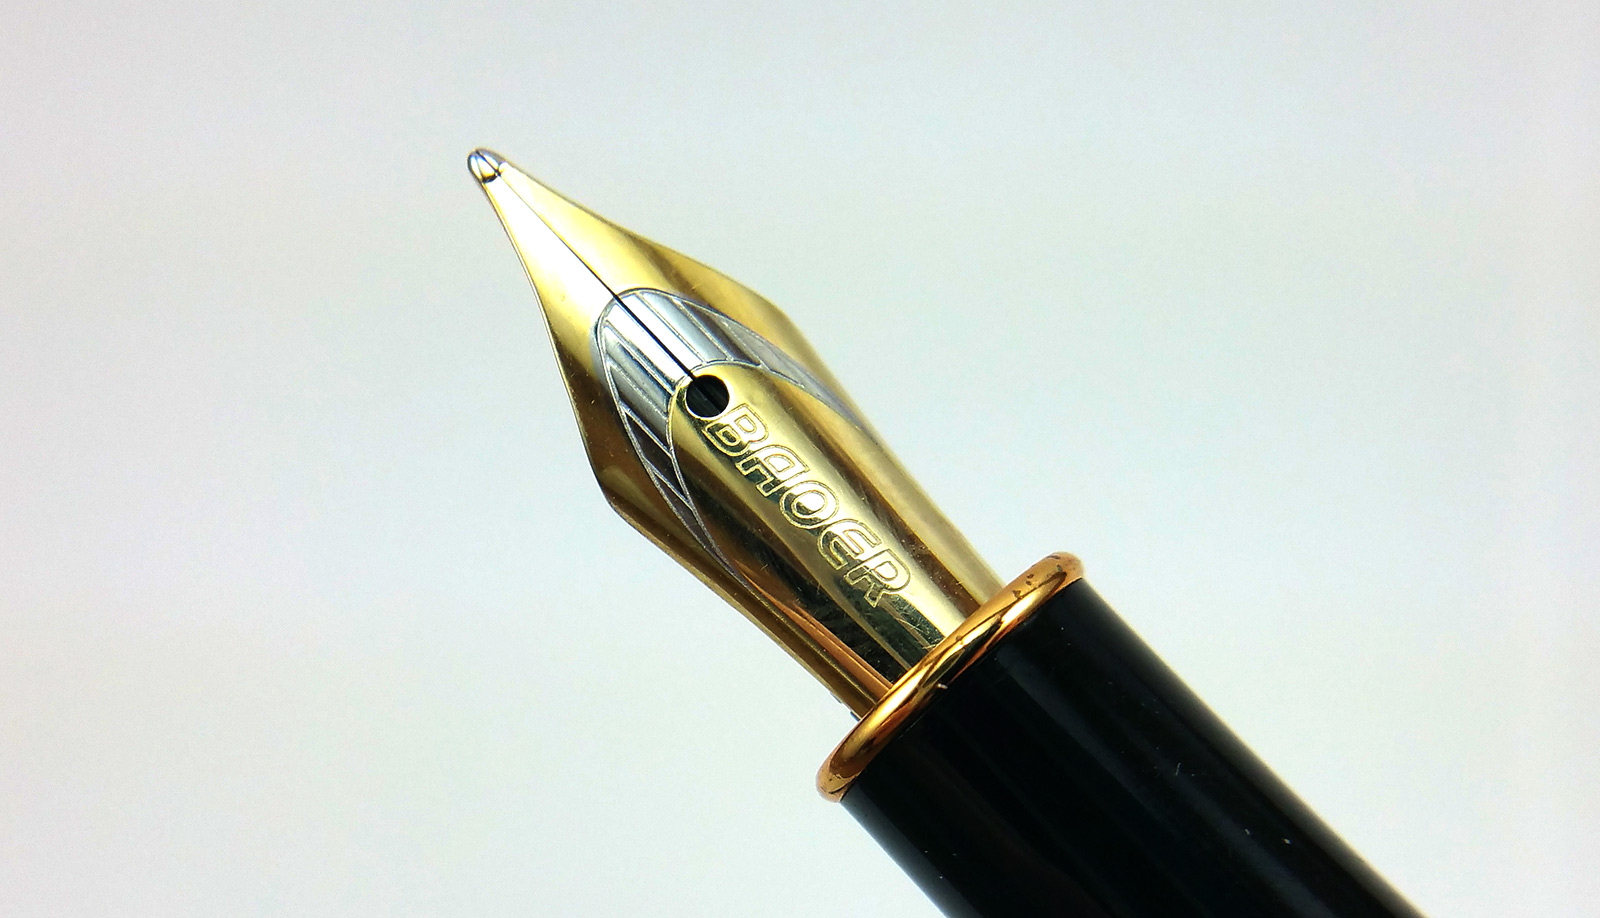 Baoer 388 Fountain Pen Nib